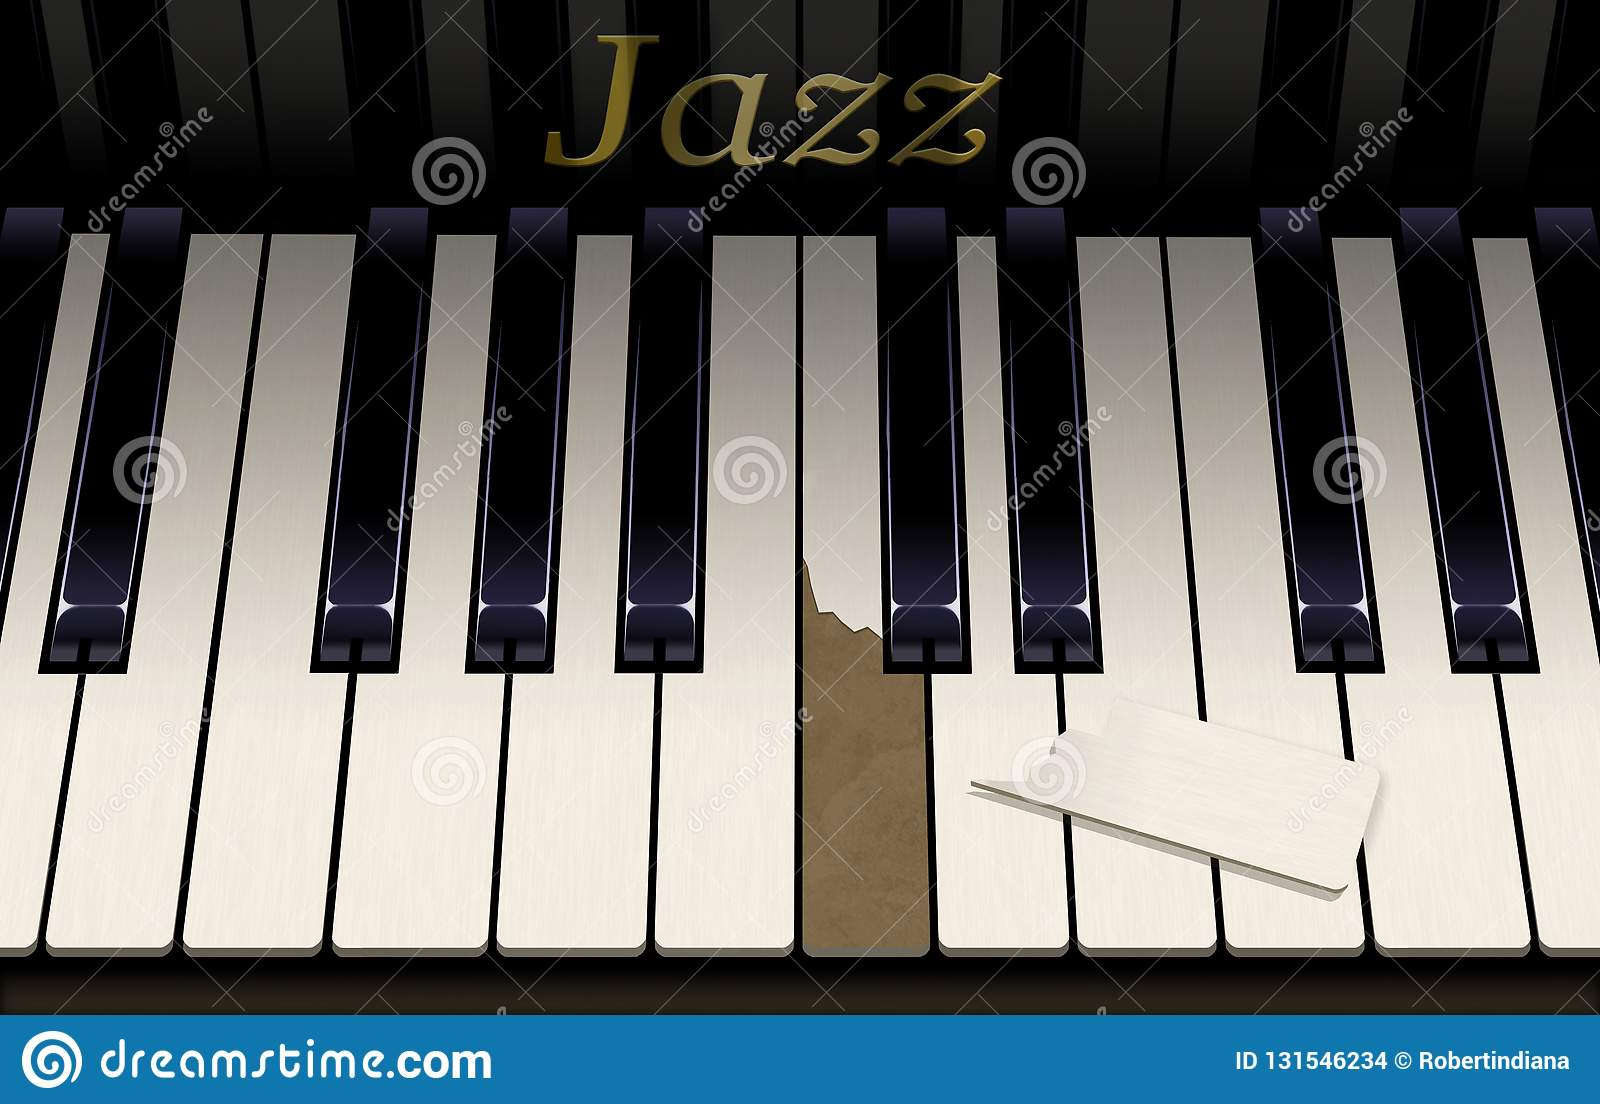 An old jazz piano keyboard has a broken key from aggressive piano playing. The emblem on the piano says Jazz in this close up look. This is an illustration stock images